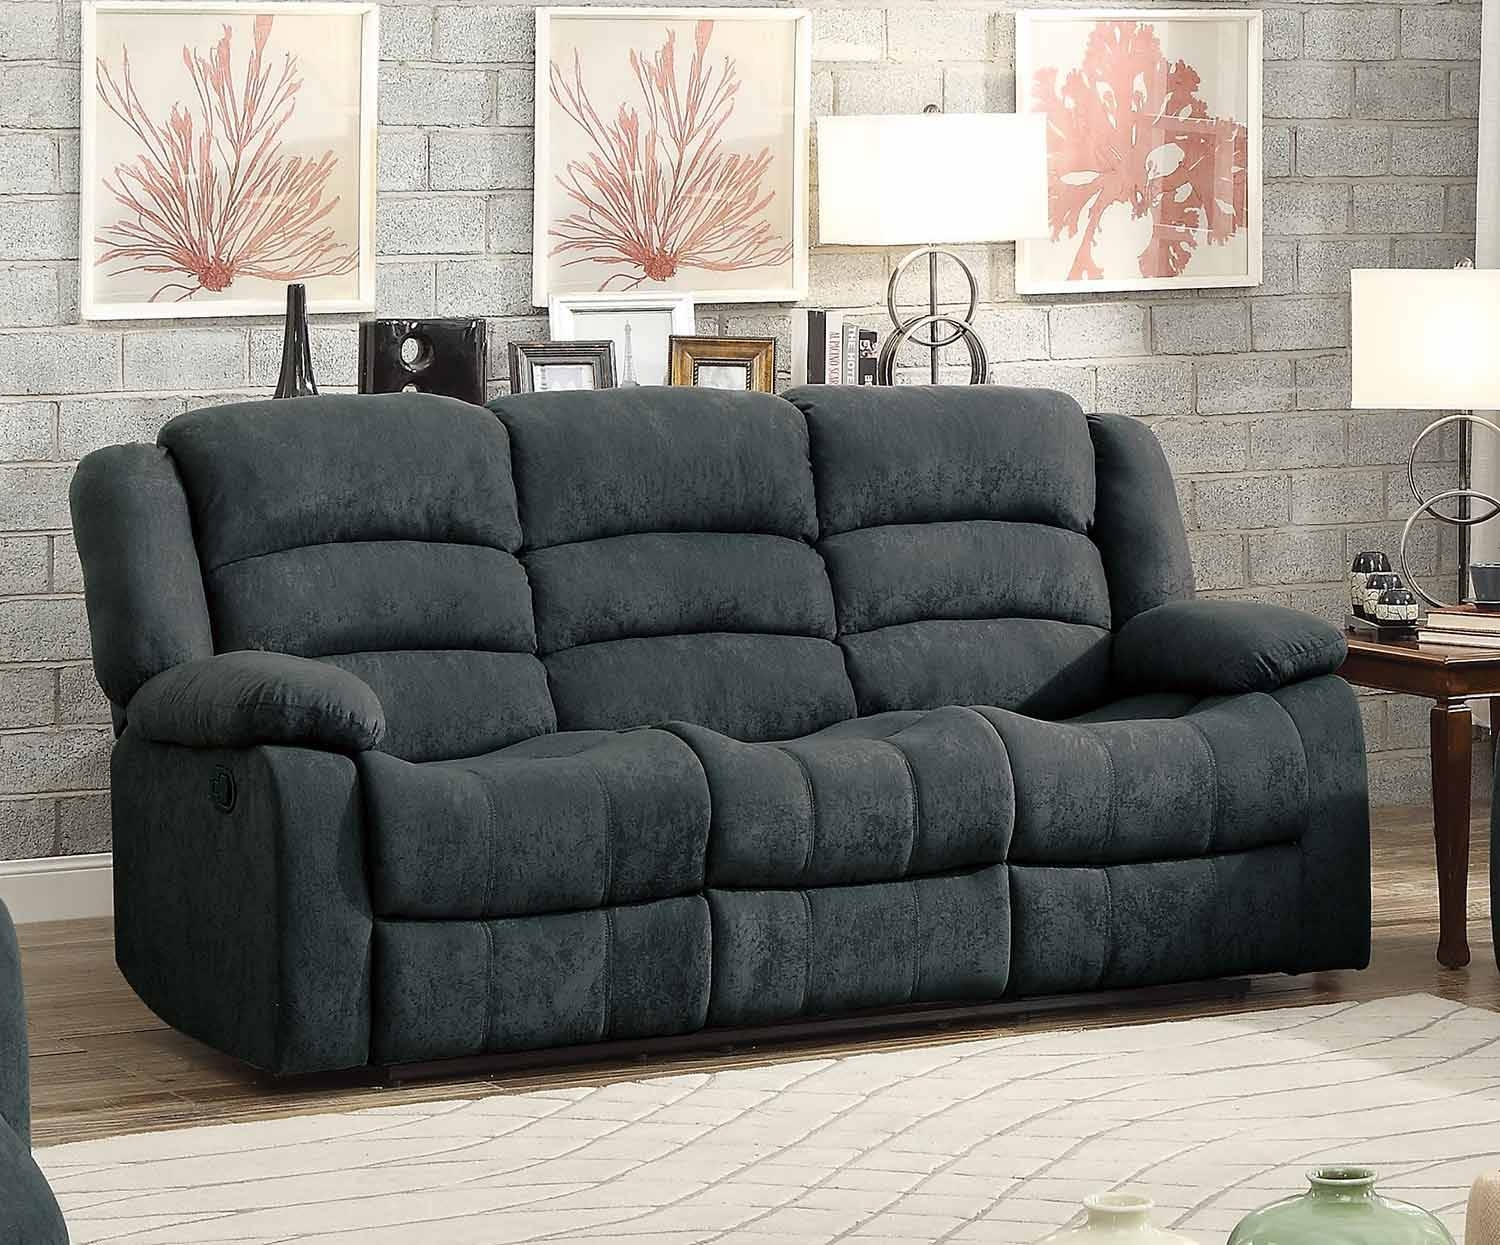 Homelegance Greenville Reclining Sofa Set - Blue Grey 8436Gy-Sofa in Blue Grey Sofas (Image 10 of 15)